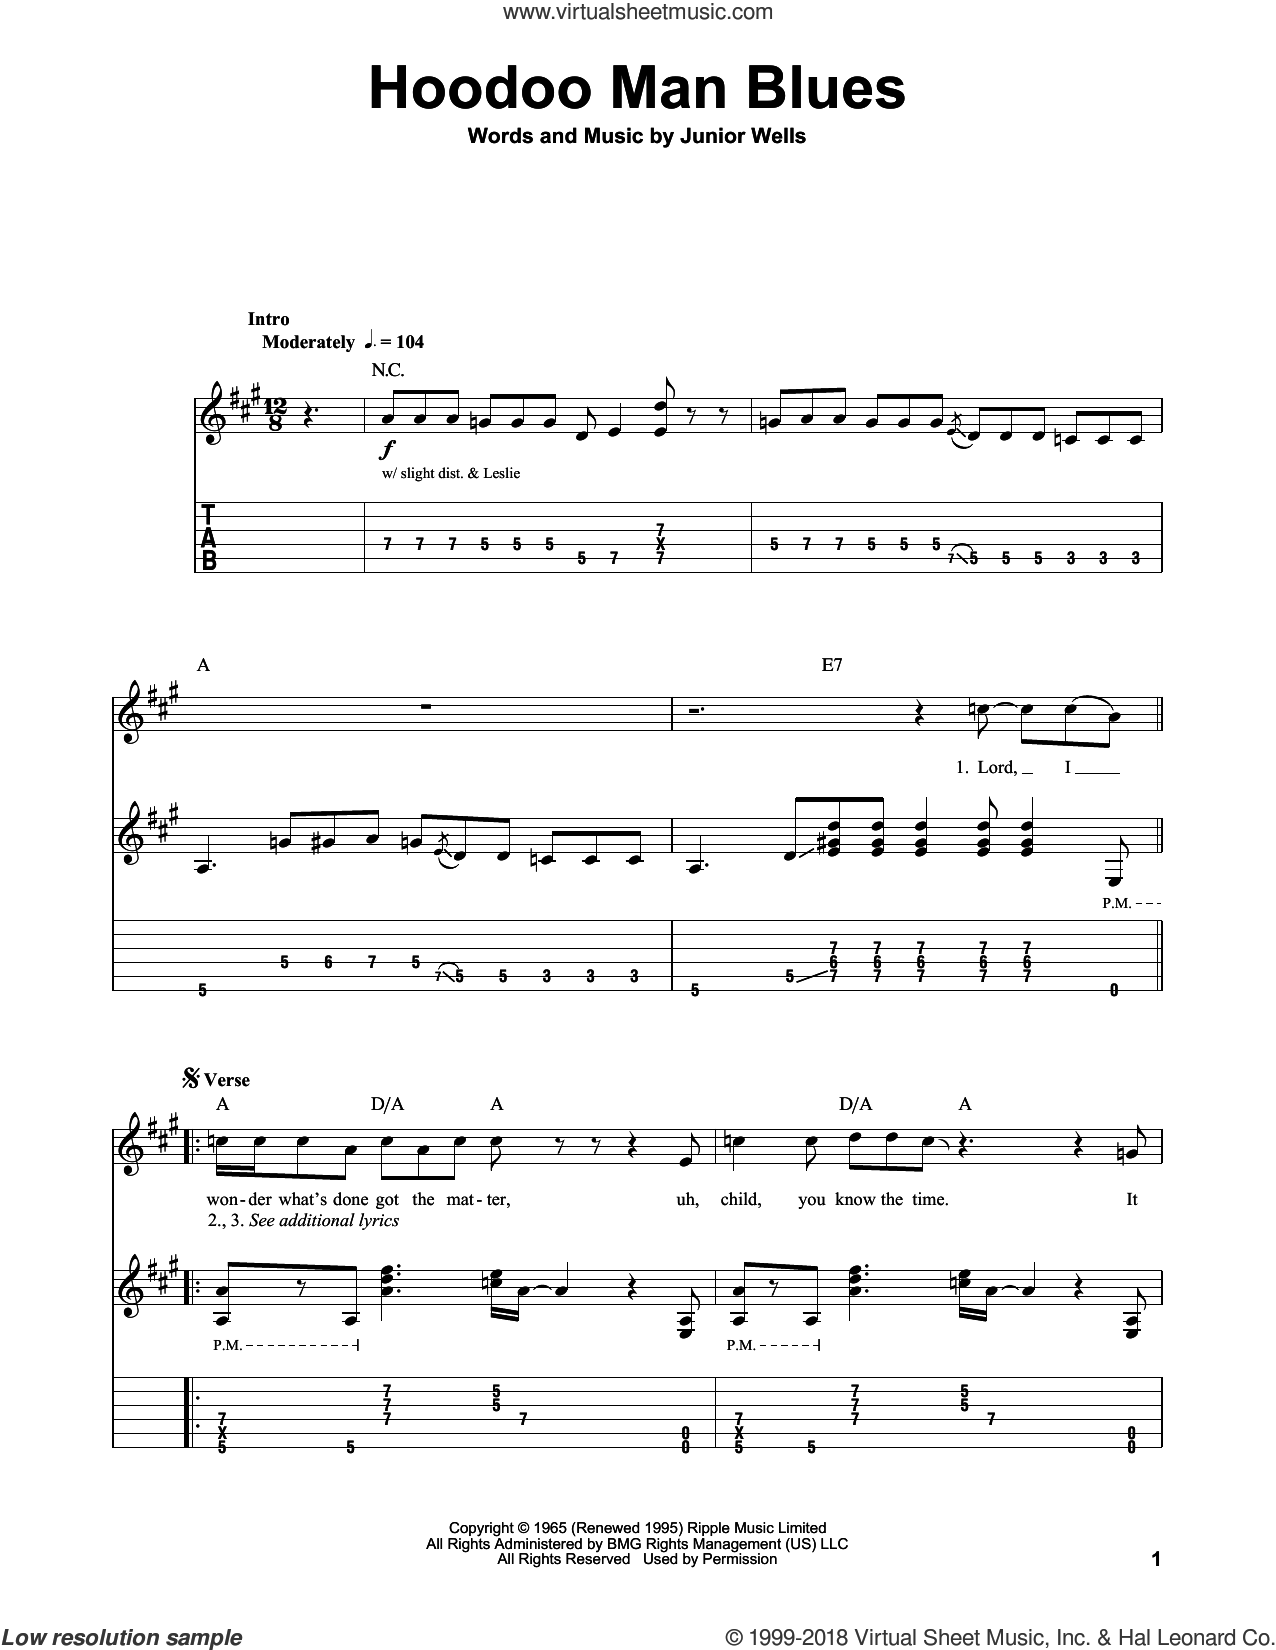 Hoodoo Man Blues sheet music for guitar (tablature, play-along) by Junior Wells